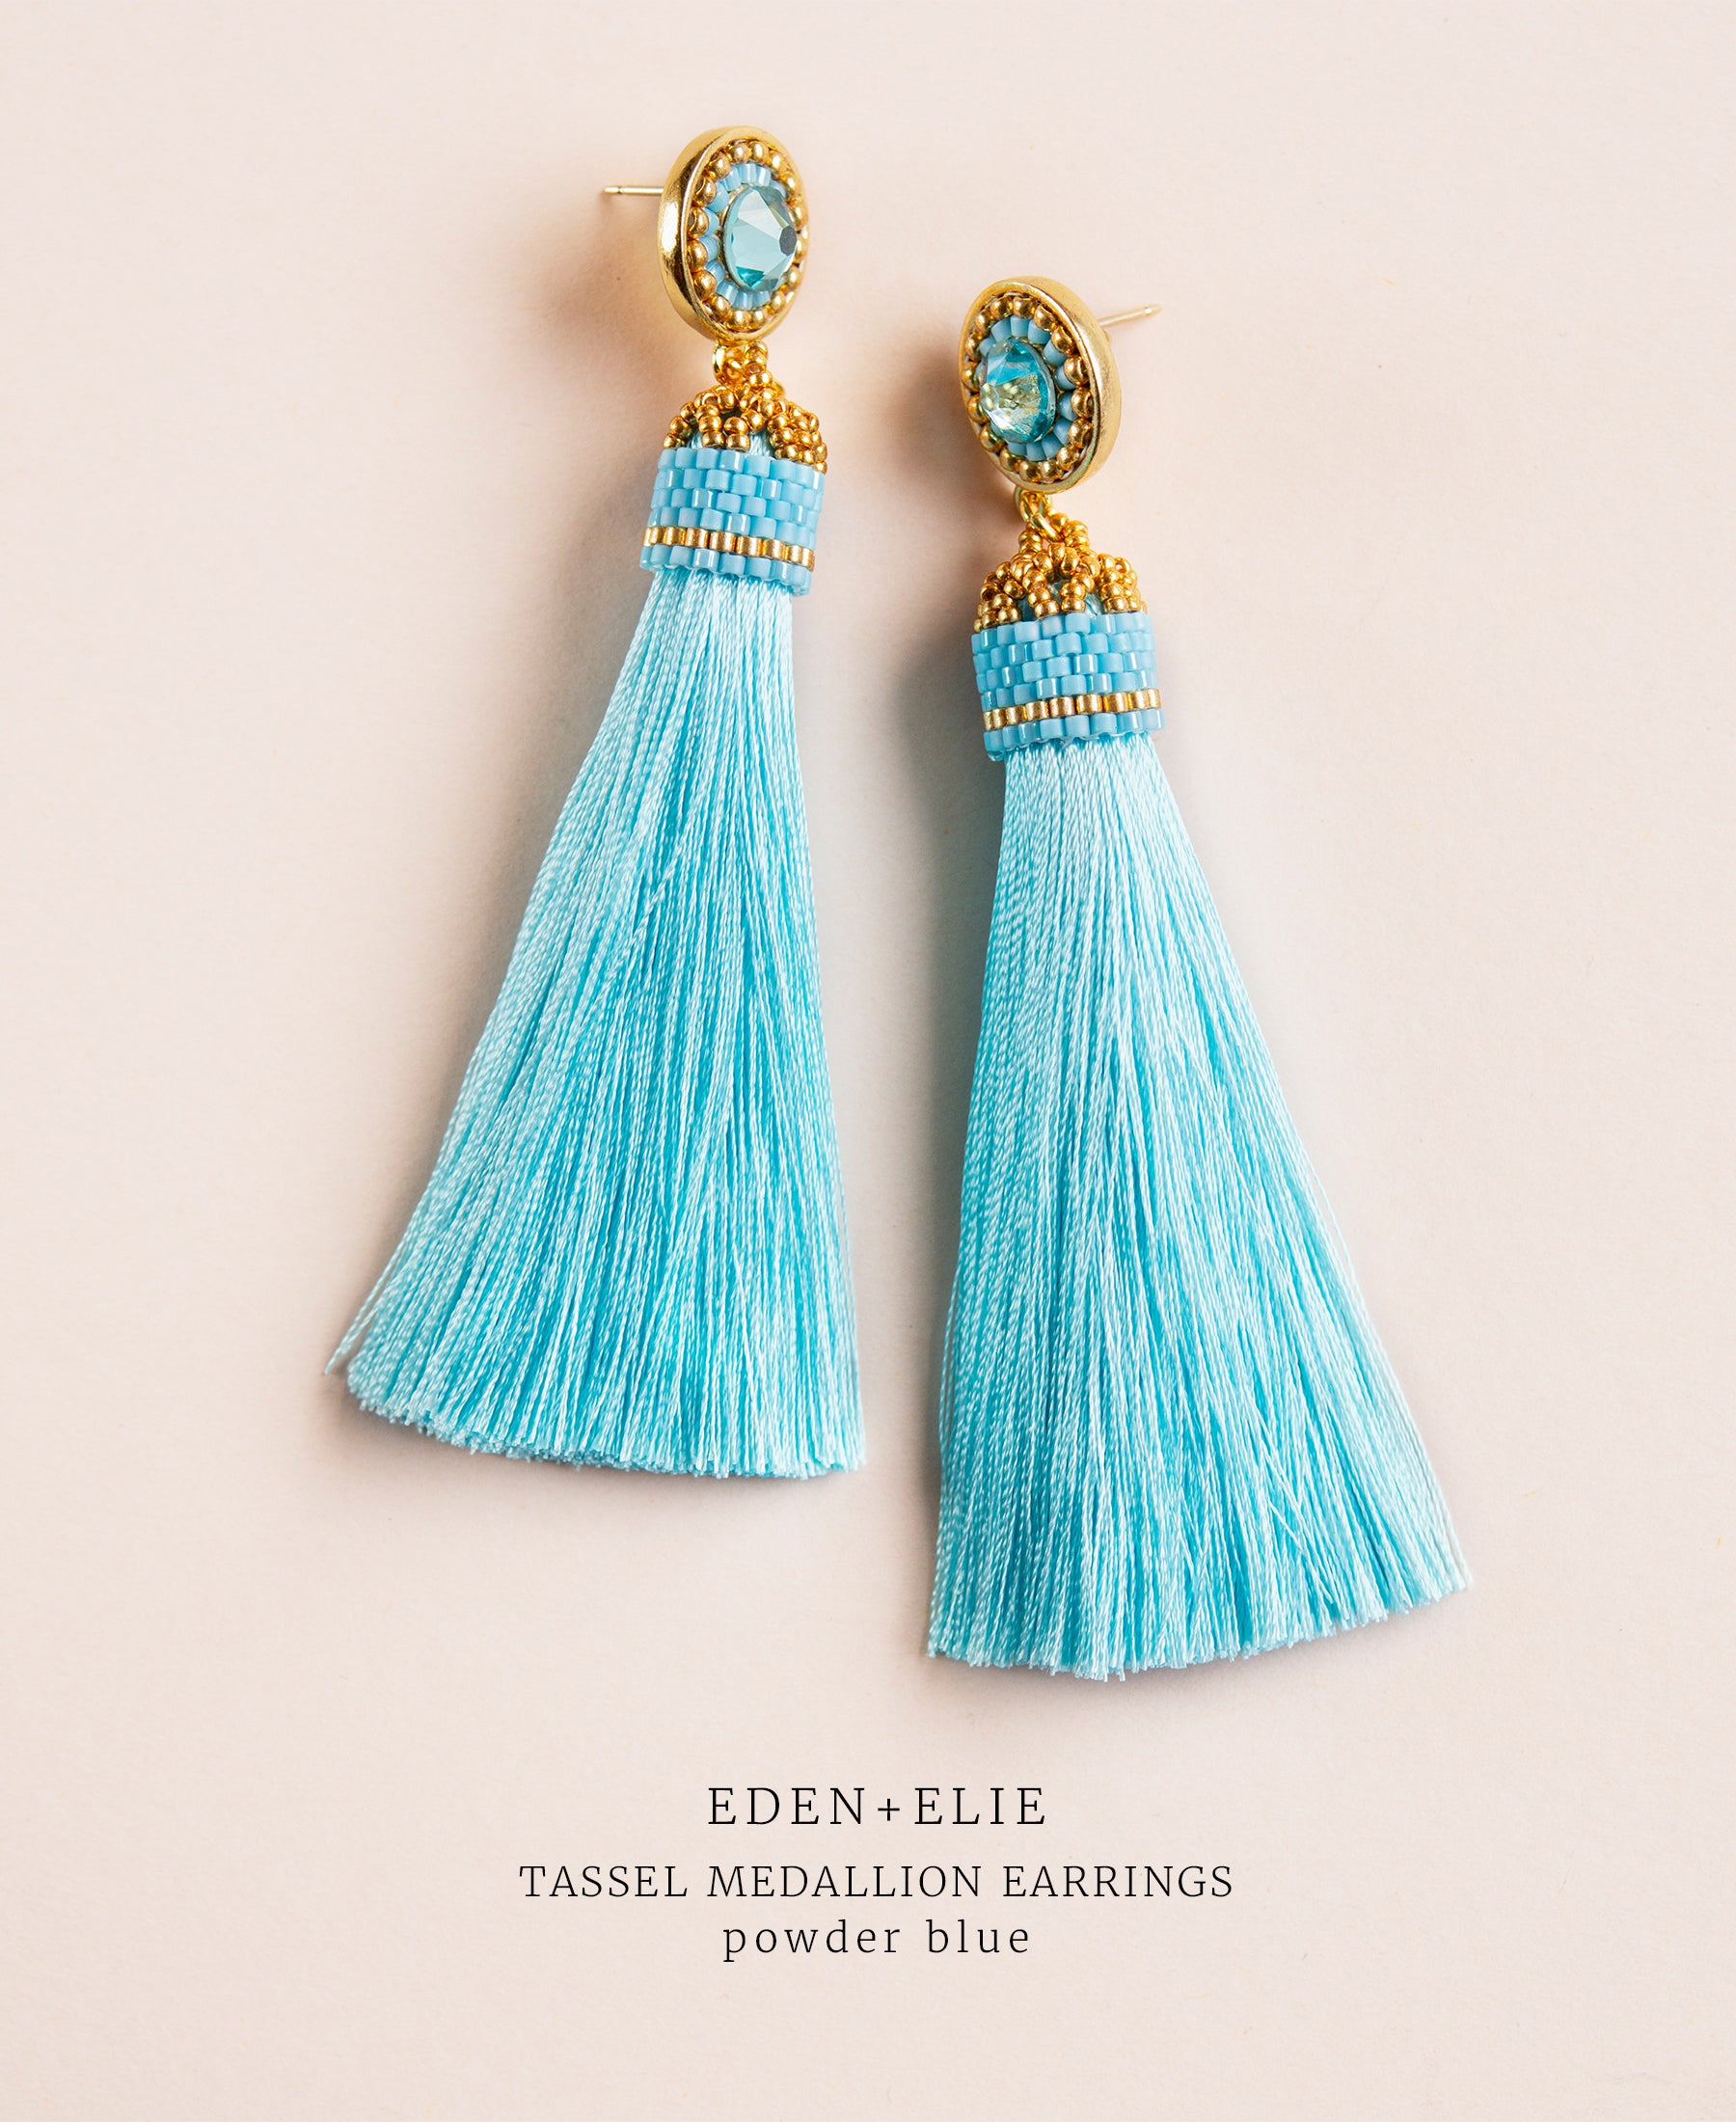 EDEN + ELIE silk tassel statement earrings - powder blue